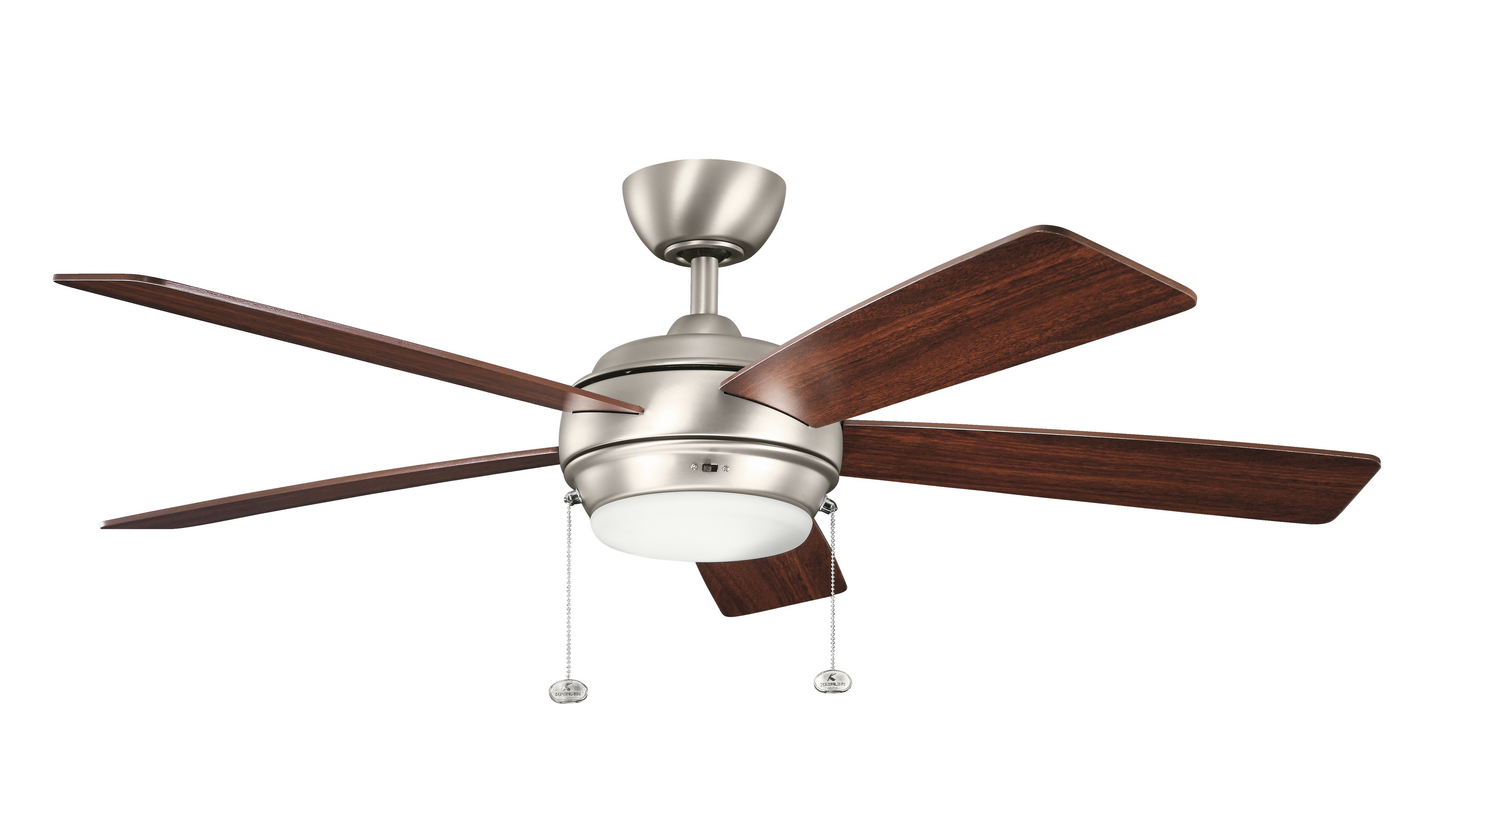 52 inchCeiling Fan from the Starkk collection by Kichler 330174NI